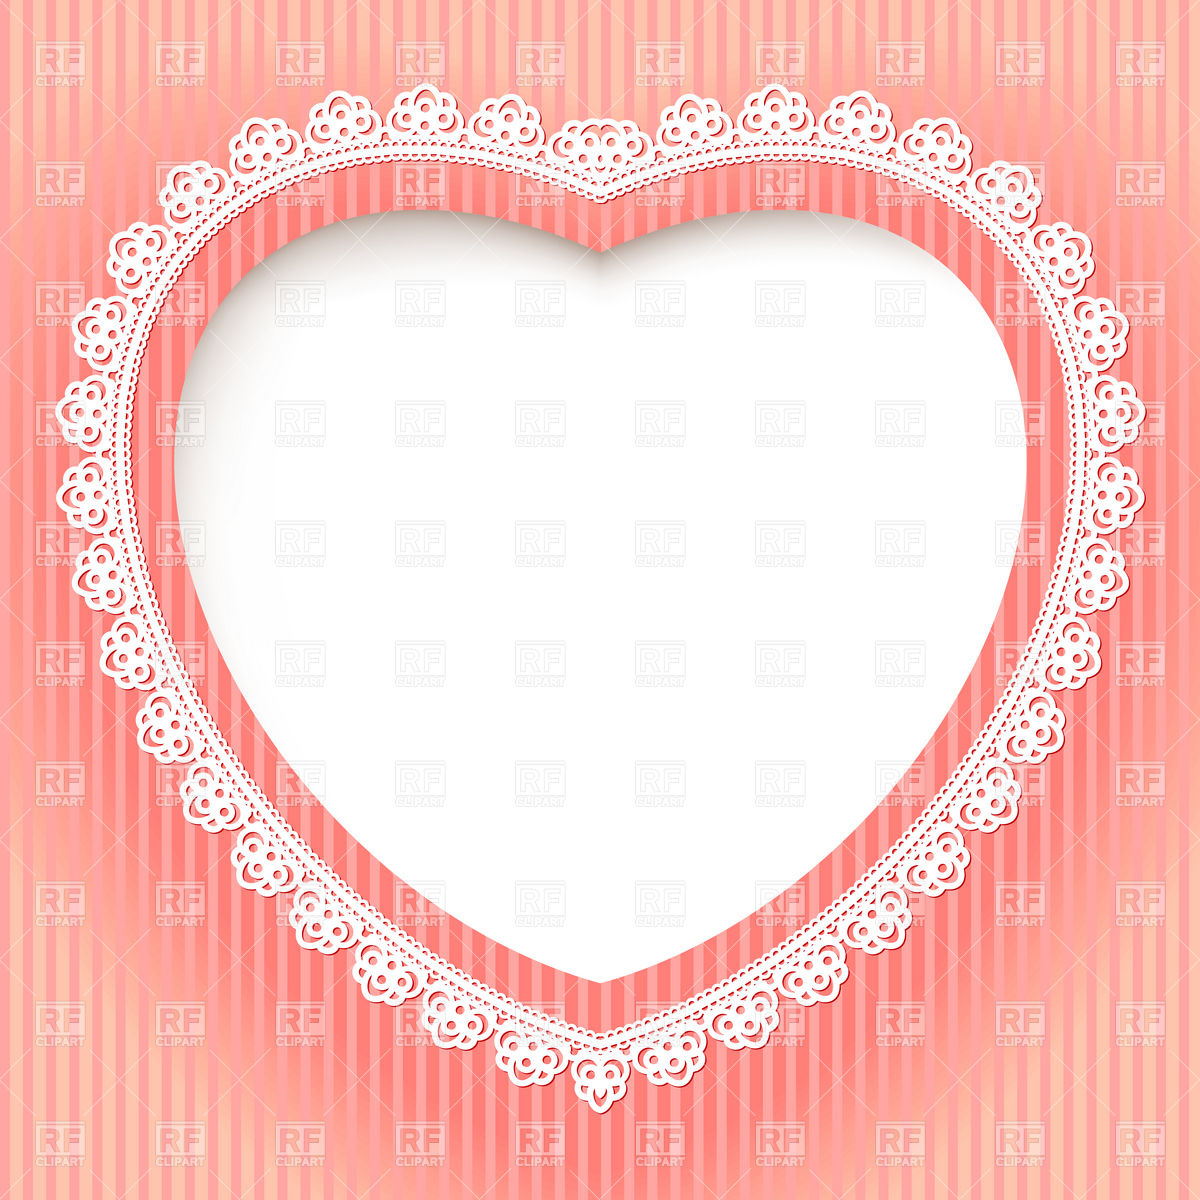 Decorative Heart Shaped Lace Frame   Festive Card Template Download